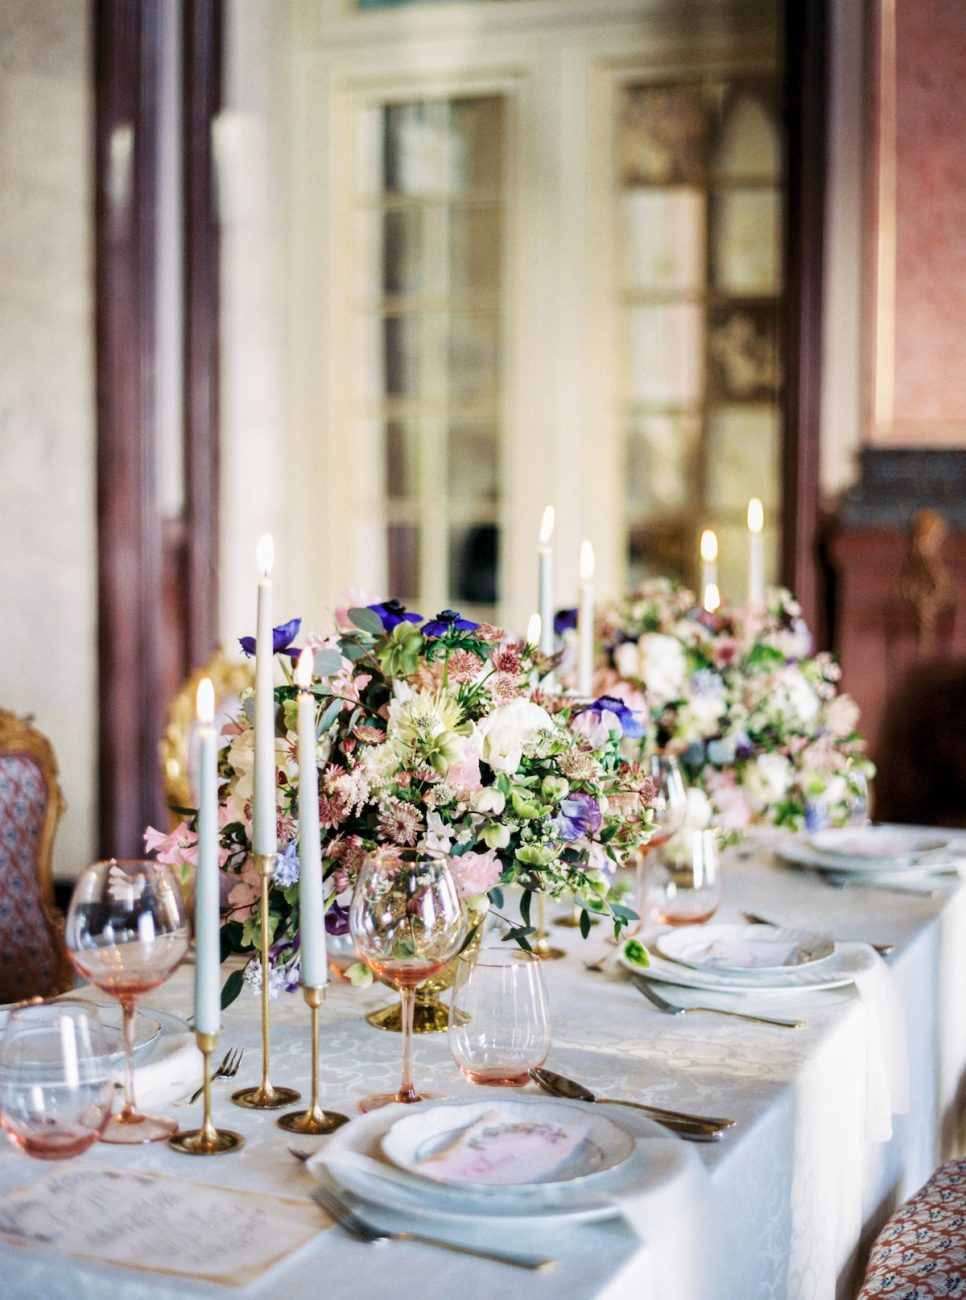 Hand-Painted-Wedding-Invitations-place-names-and-menus on a table-setting-in-a-palace